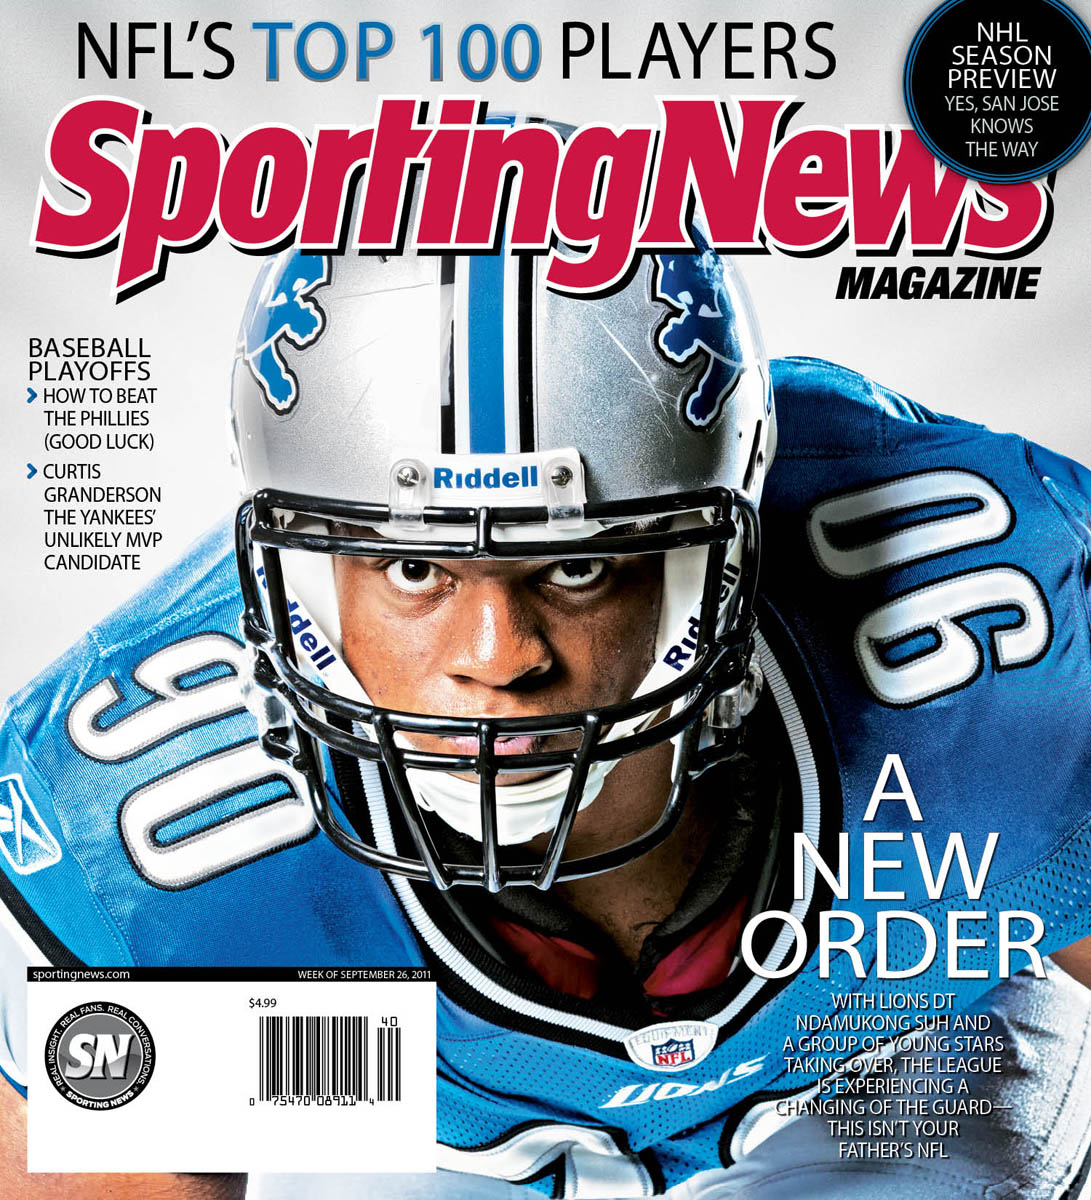 Sporting News Magazine cover, Ndamukong Suh